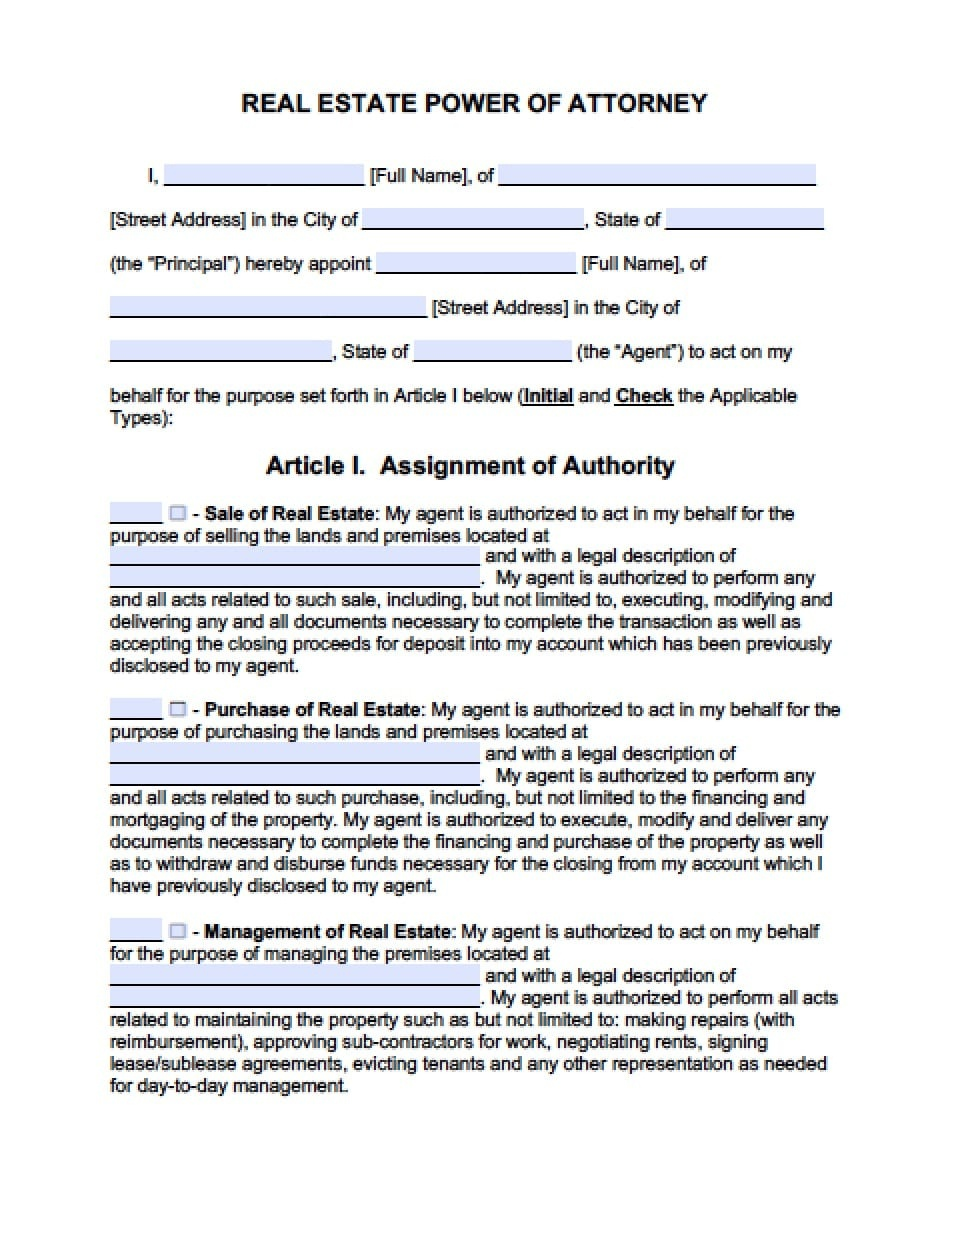 Maryland Real Estate Only Power Of Attorney Form - Power Of Attorney - Maryland Power Of Attorney Form Free Printable